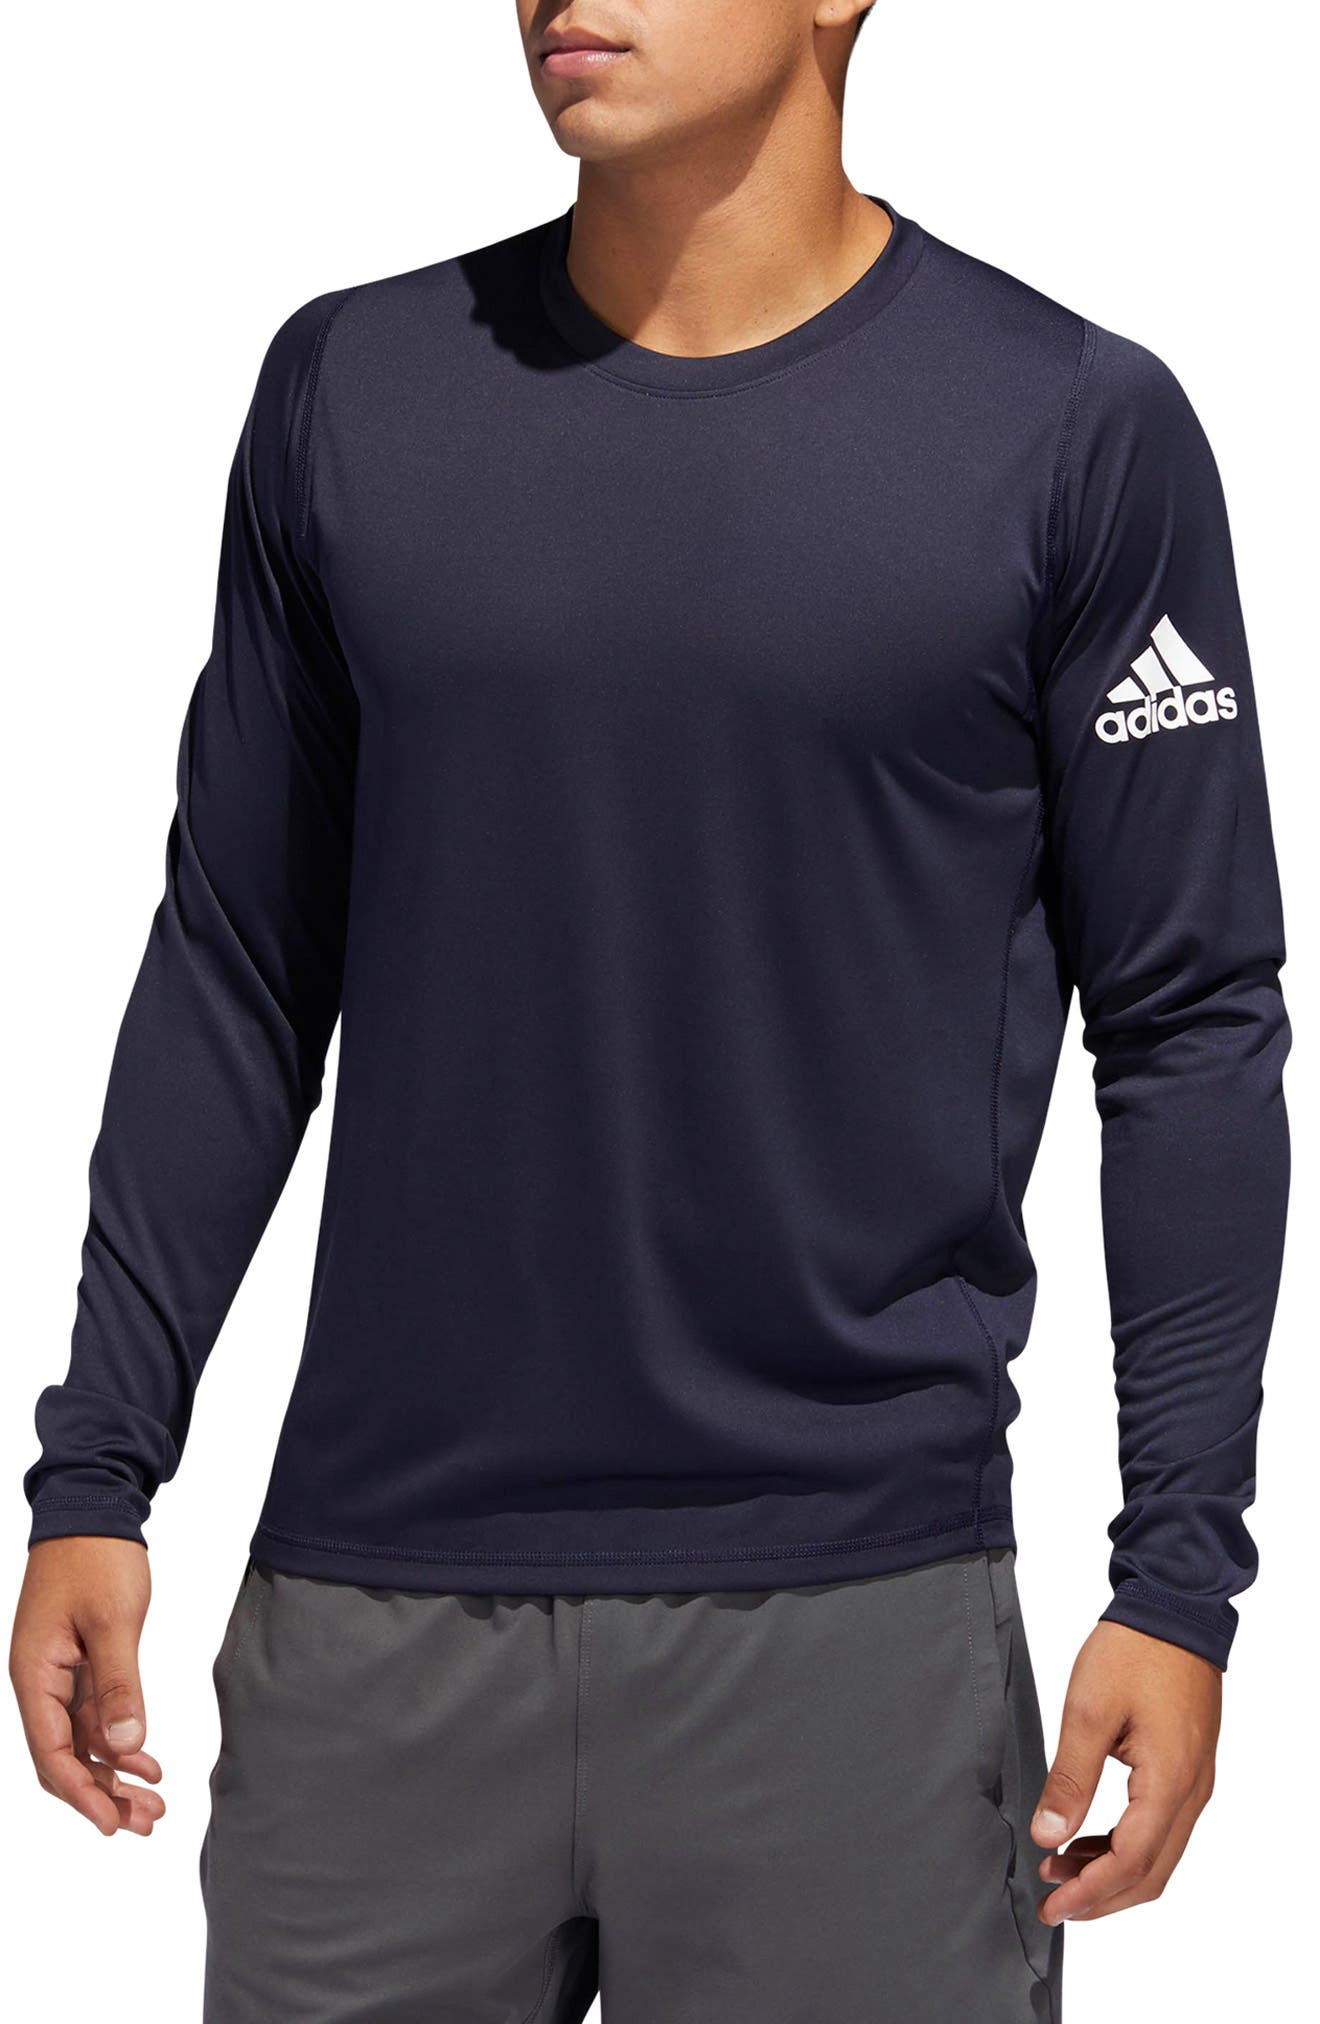 Men's Adidas Clothing | Nordstrom